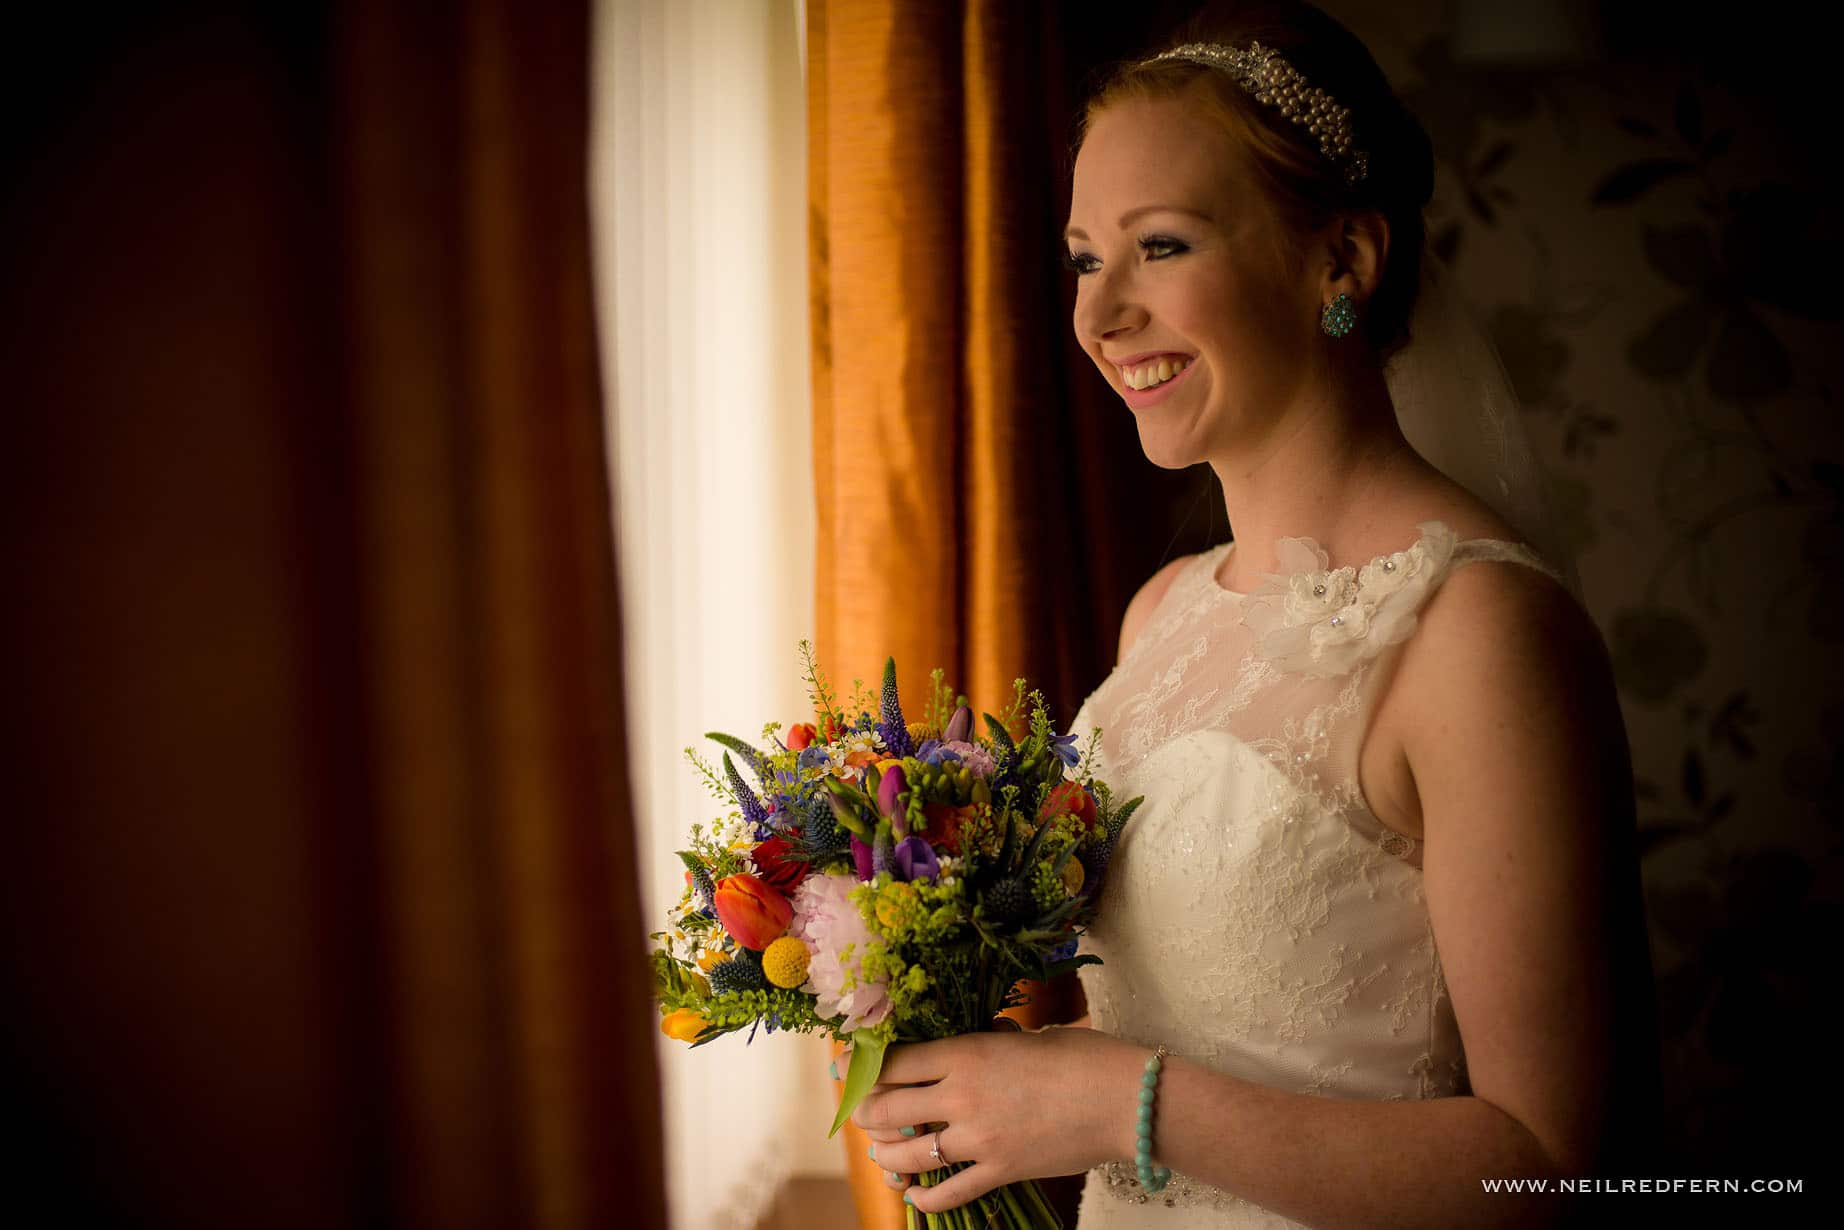 Bride getting ready in the morning 12